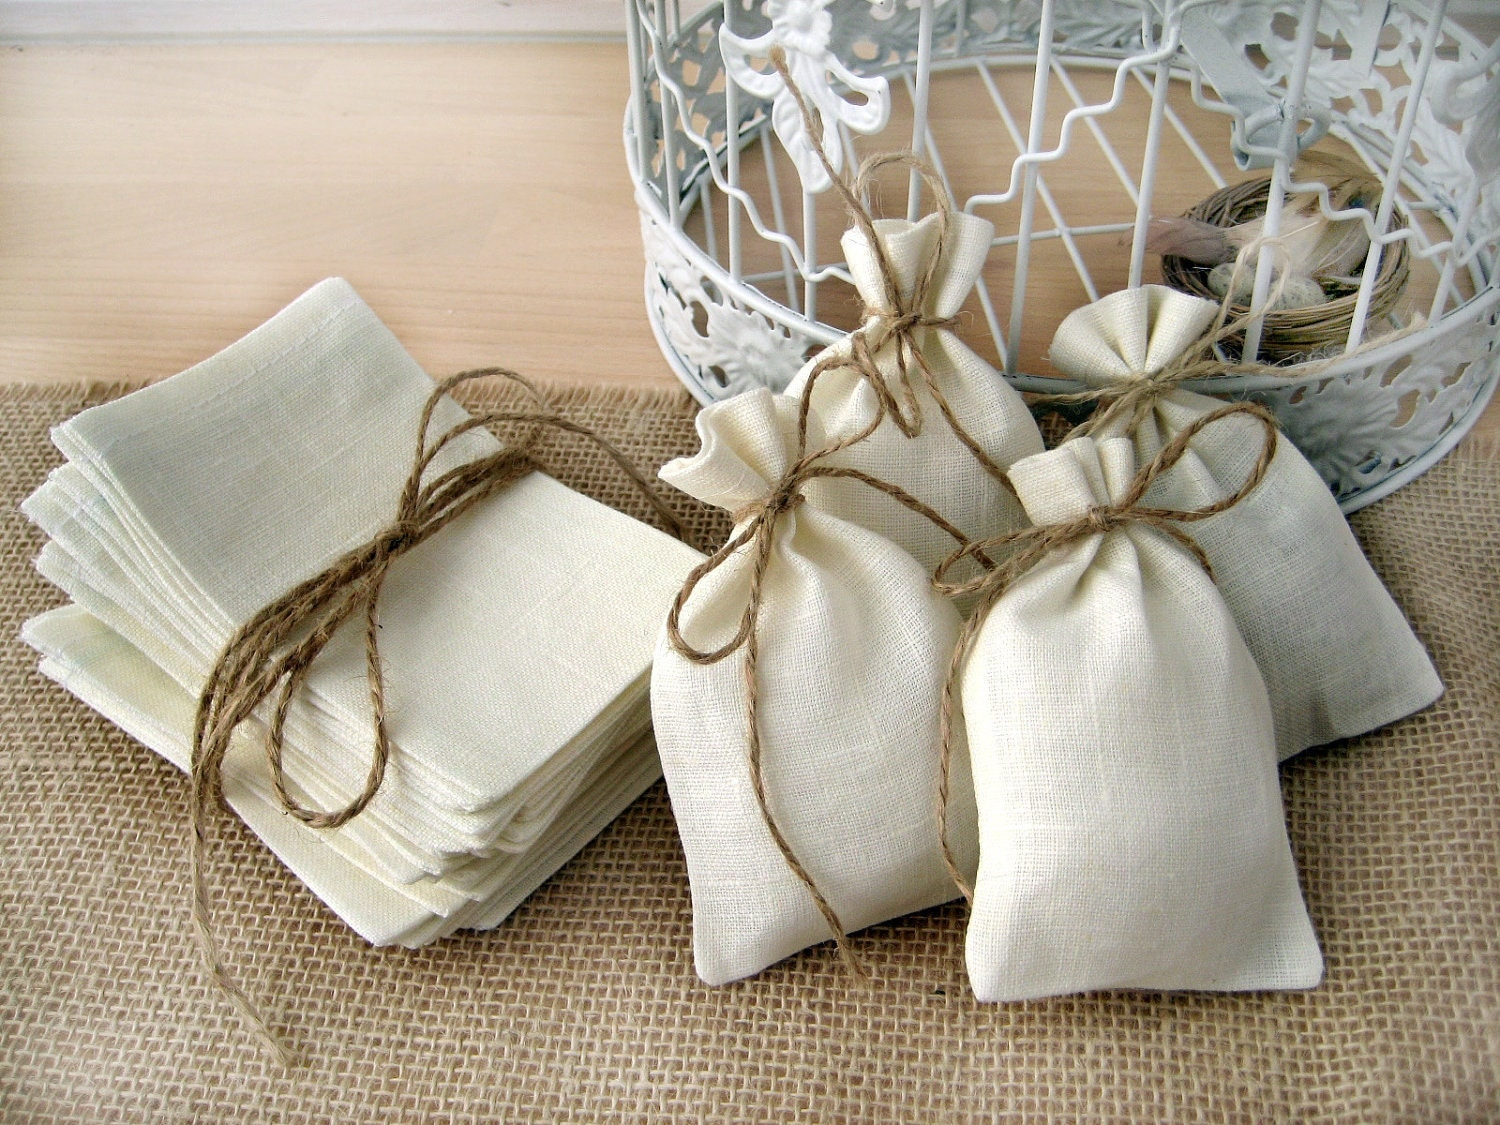 Wedding Favor Bags Or Boxes : SET OF 10 Eco Rustic Linen Wedding Favor Bag or Gift Bag